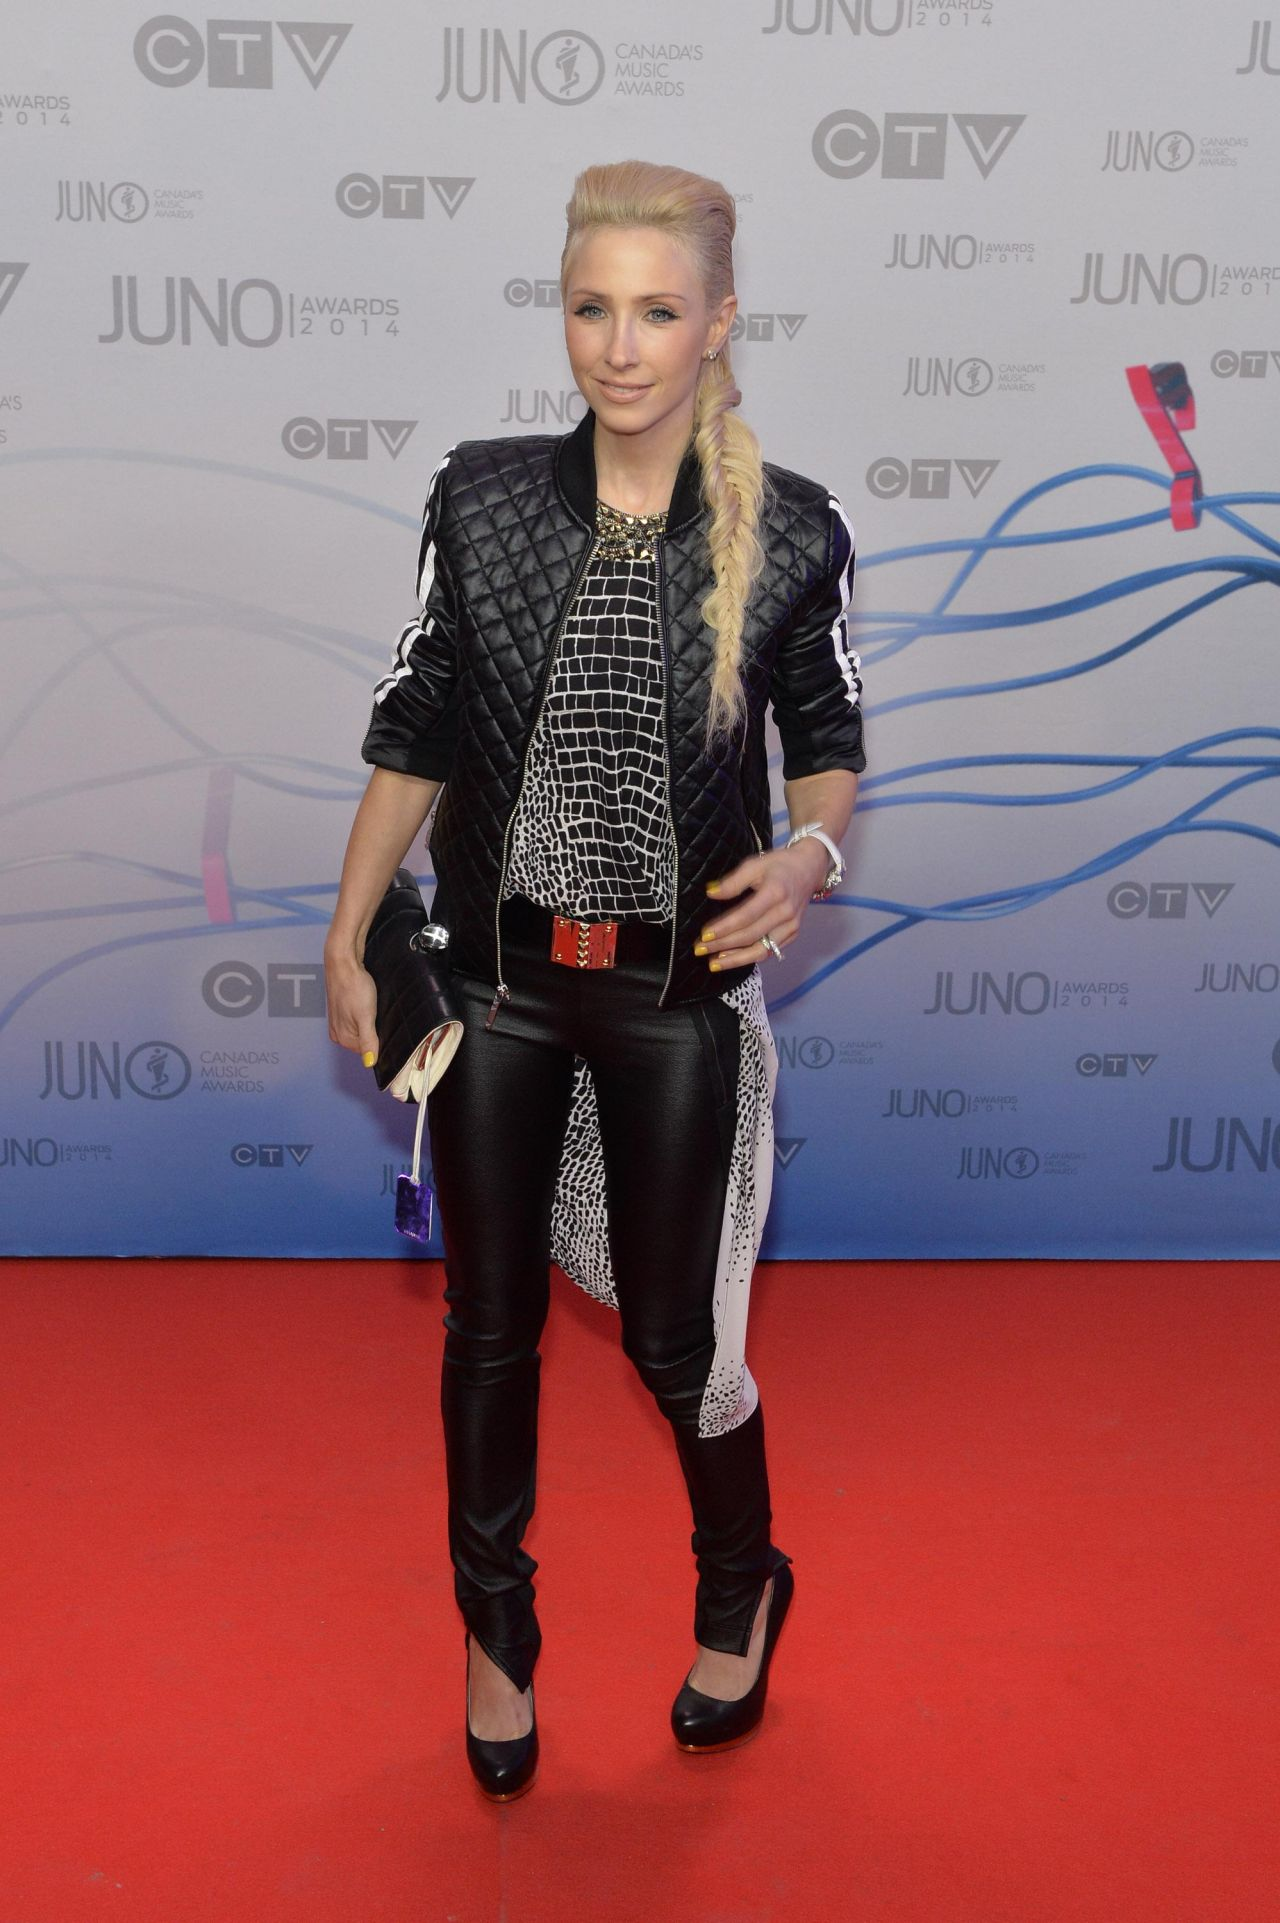 Jacynthe - 2014 Juno Awards in Winnipeg